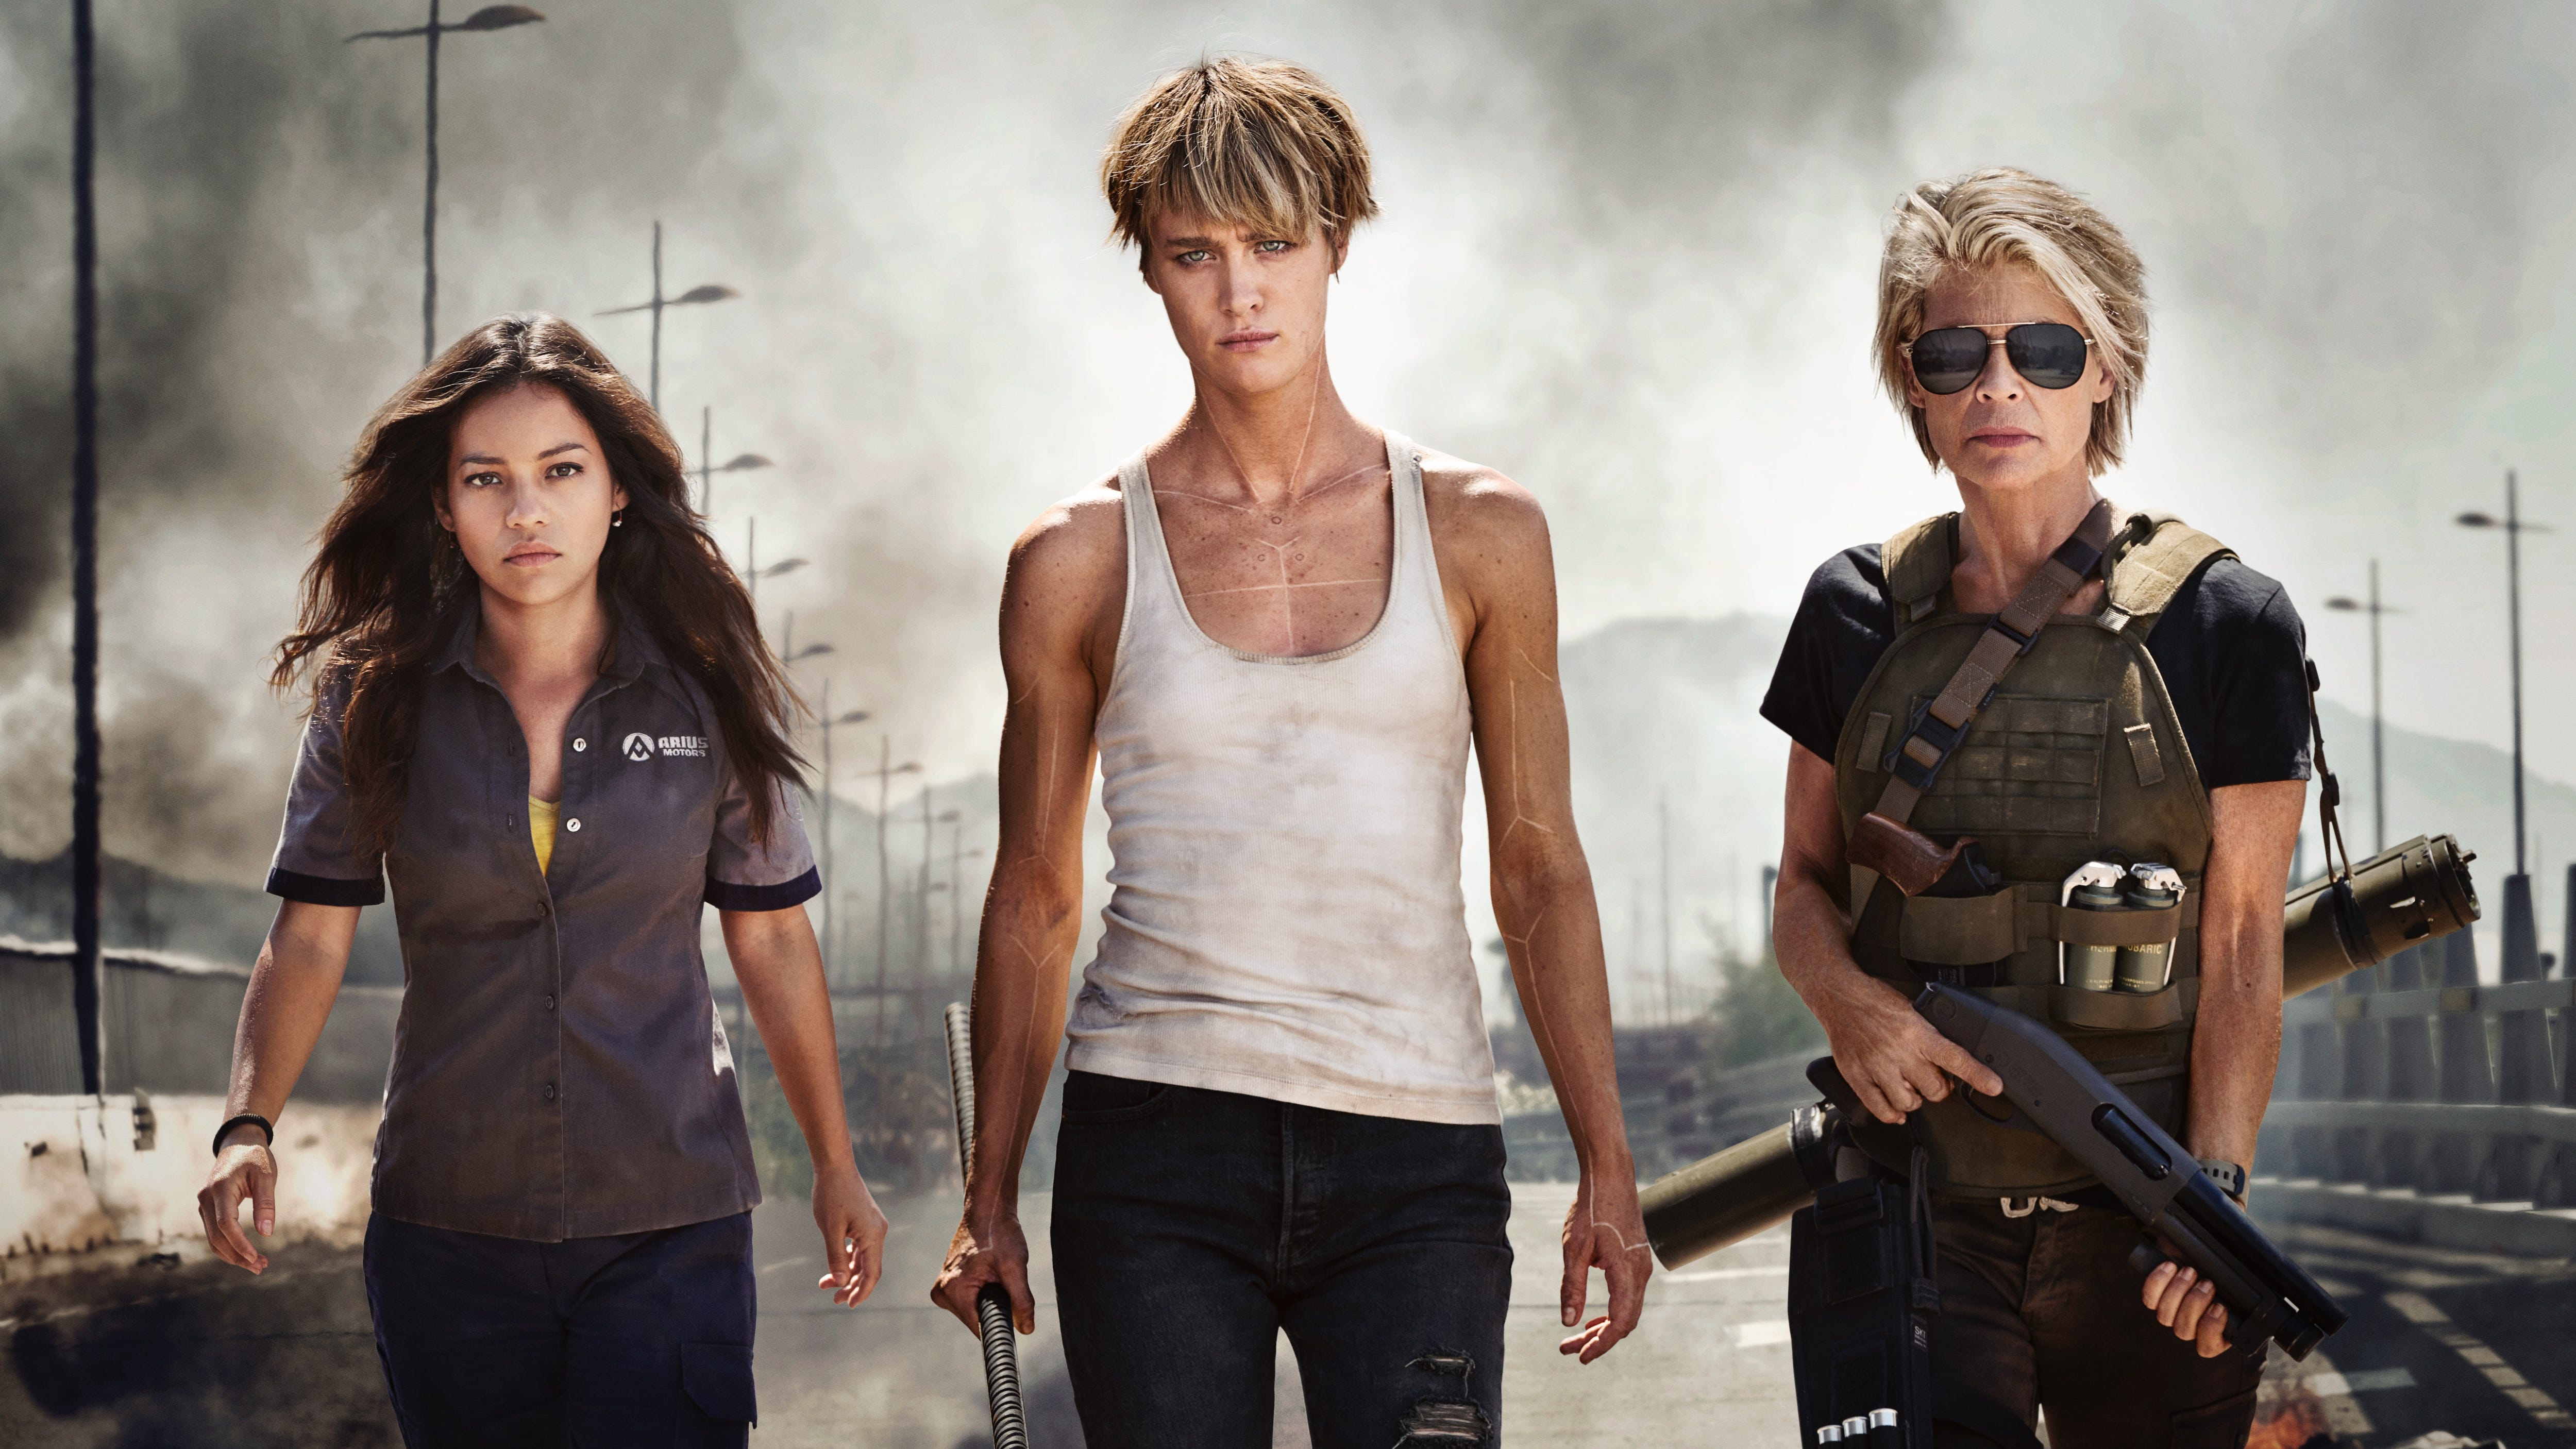 """Sarah Connor (Linda Hamilton) is still armed to the teeth 27 years after """"Terminator 2: Judgment Day."""" And now she has company (Natalia Reyes and Mackenzie Davis)."""